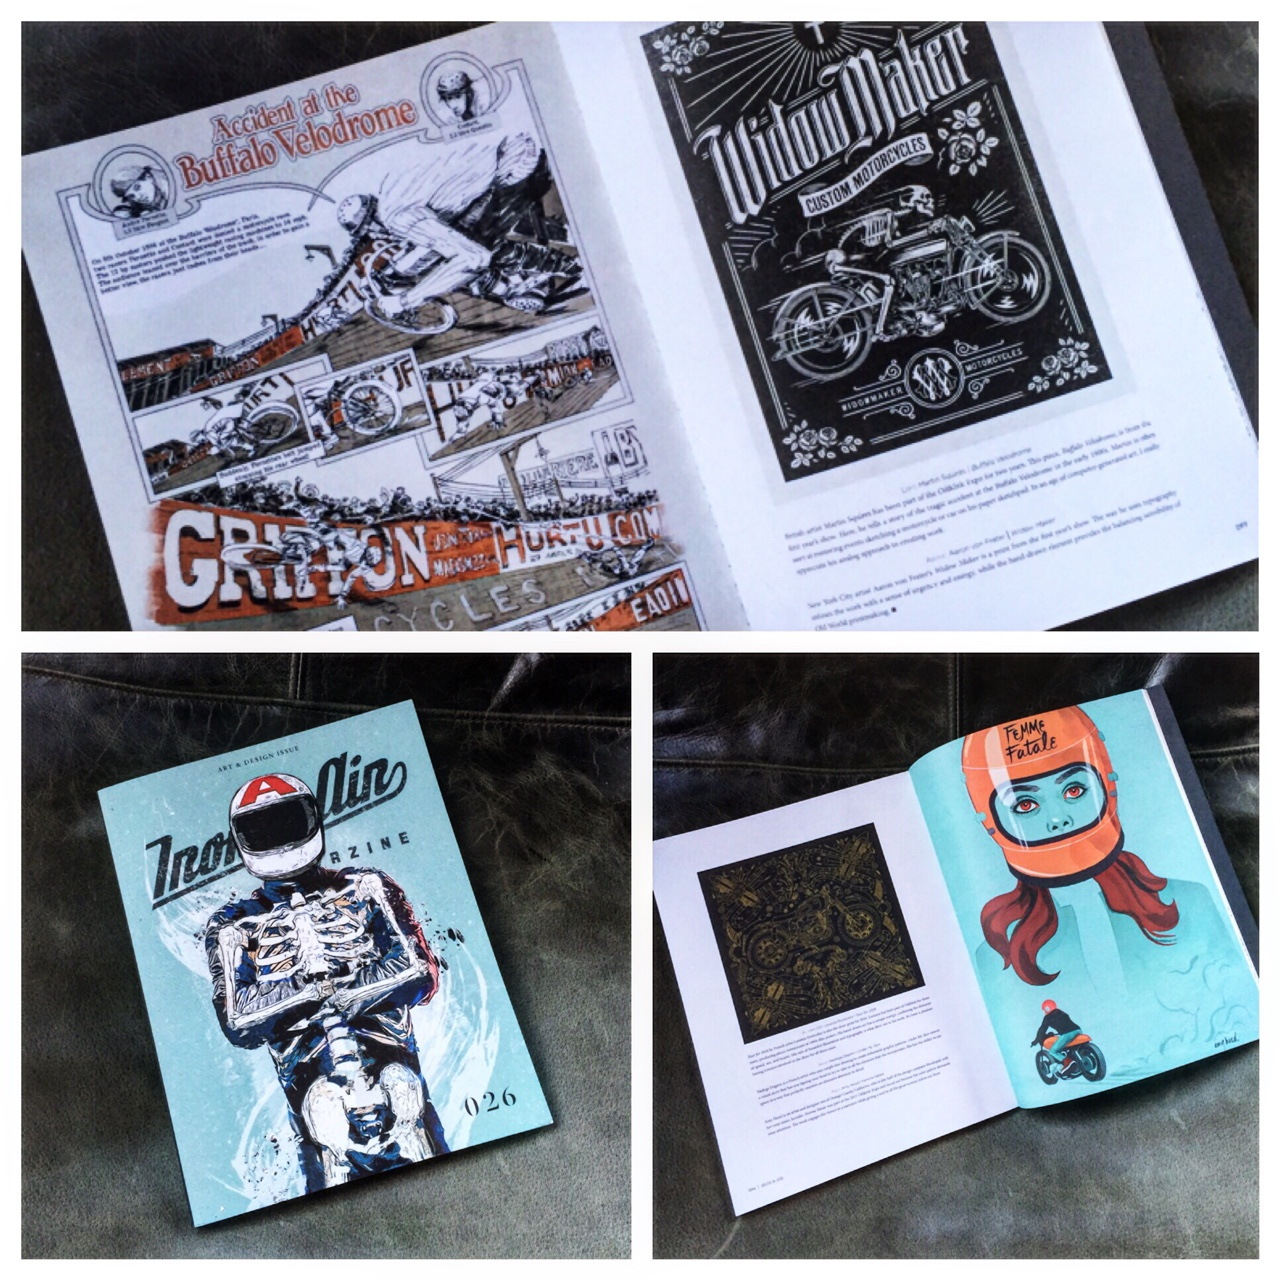 A nice feature on Oil&Ink in the 2017 Iron&Air Design issue